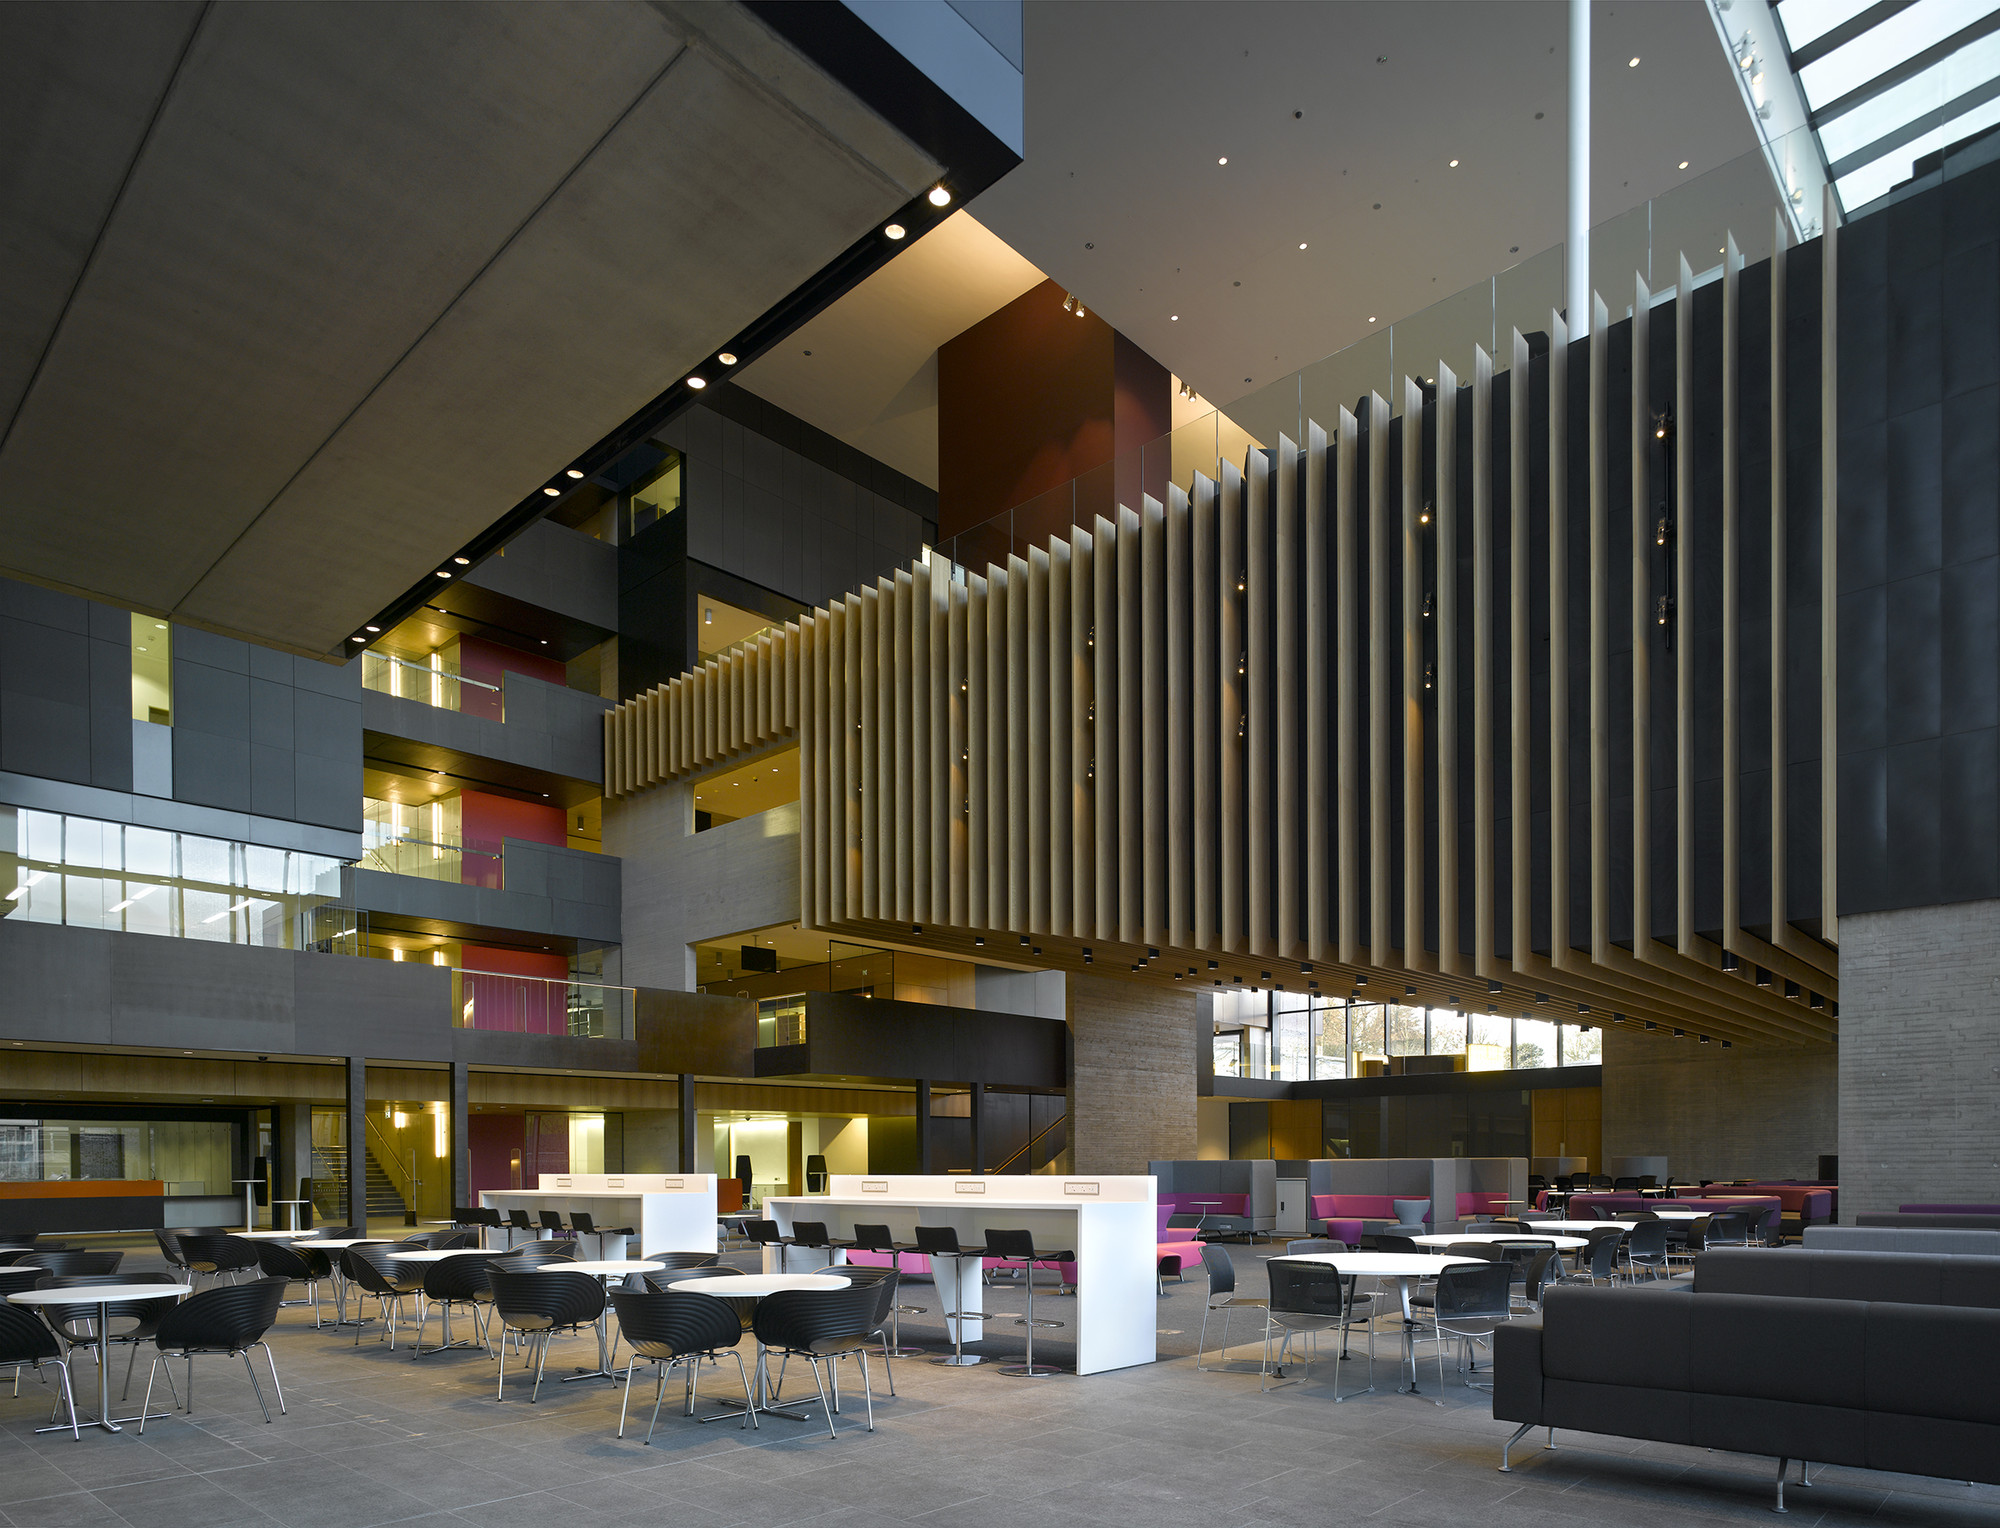 john henry brookes and abercrombie building design engine archdaily. Black Bedroom Furniture Sets. Home Design Ideas